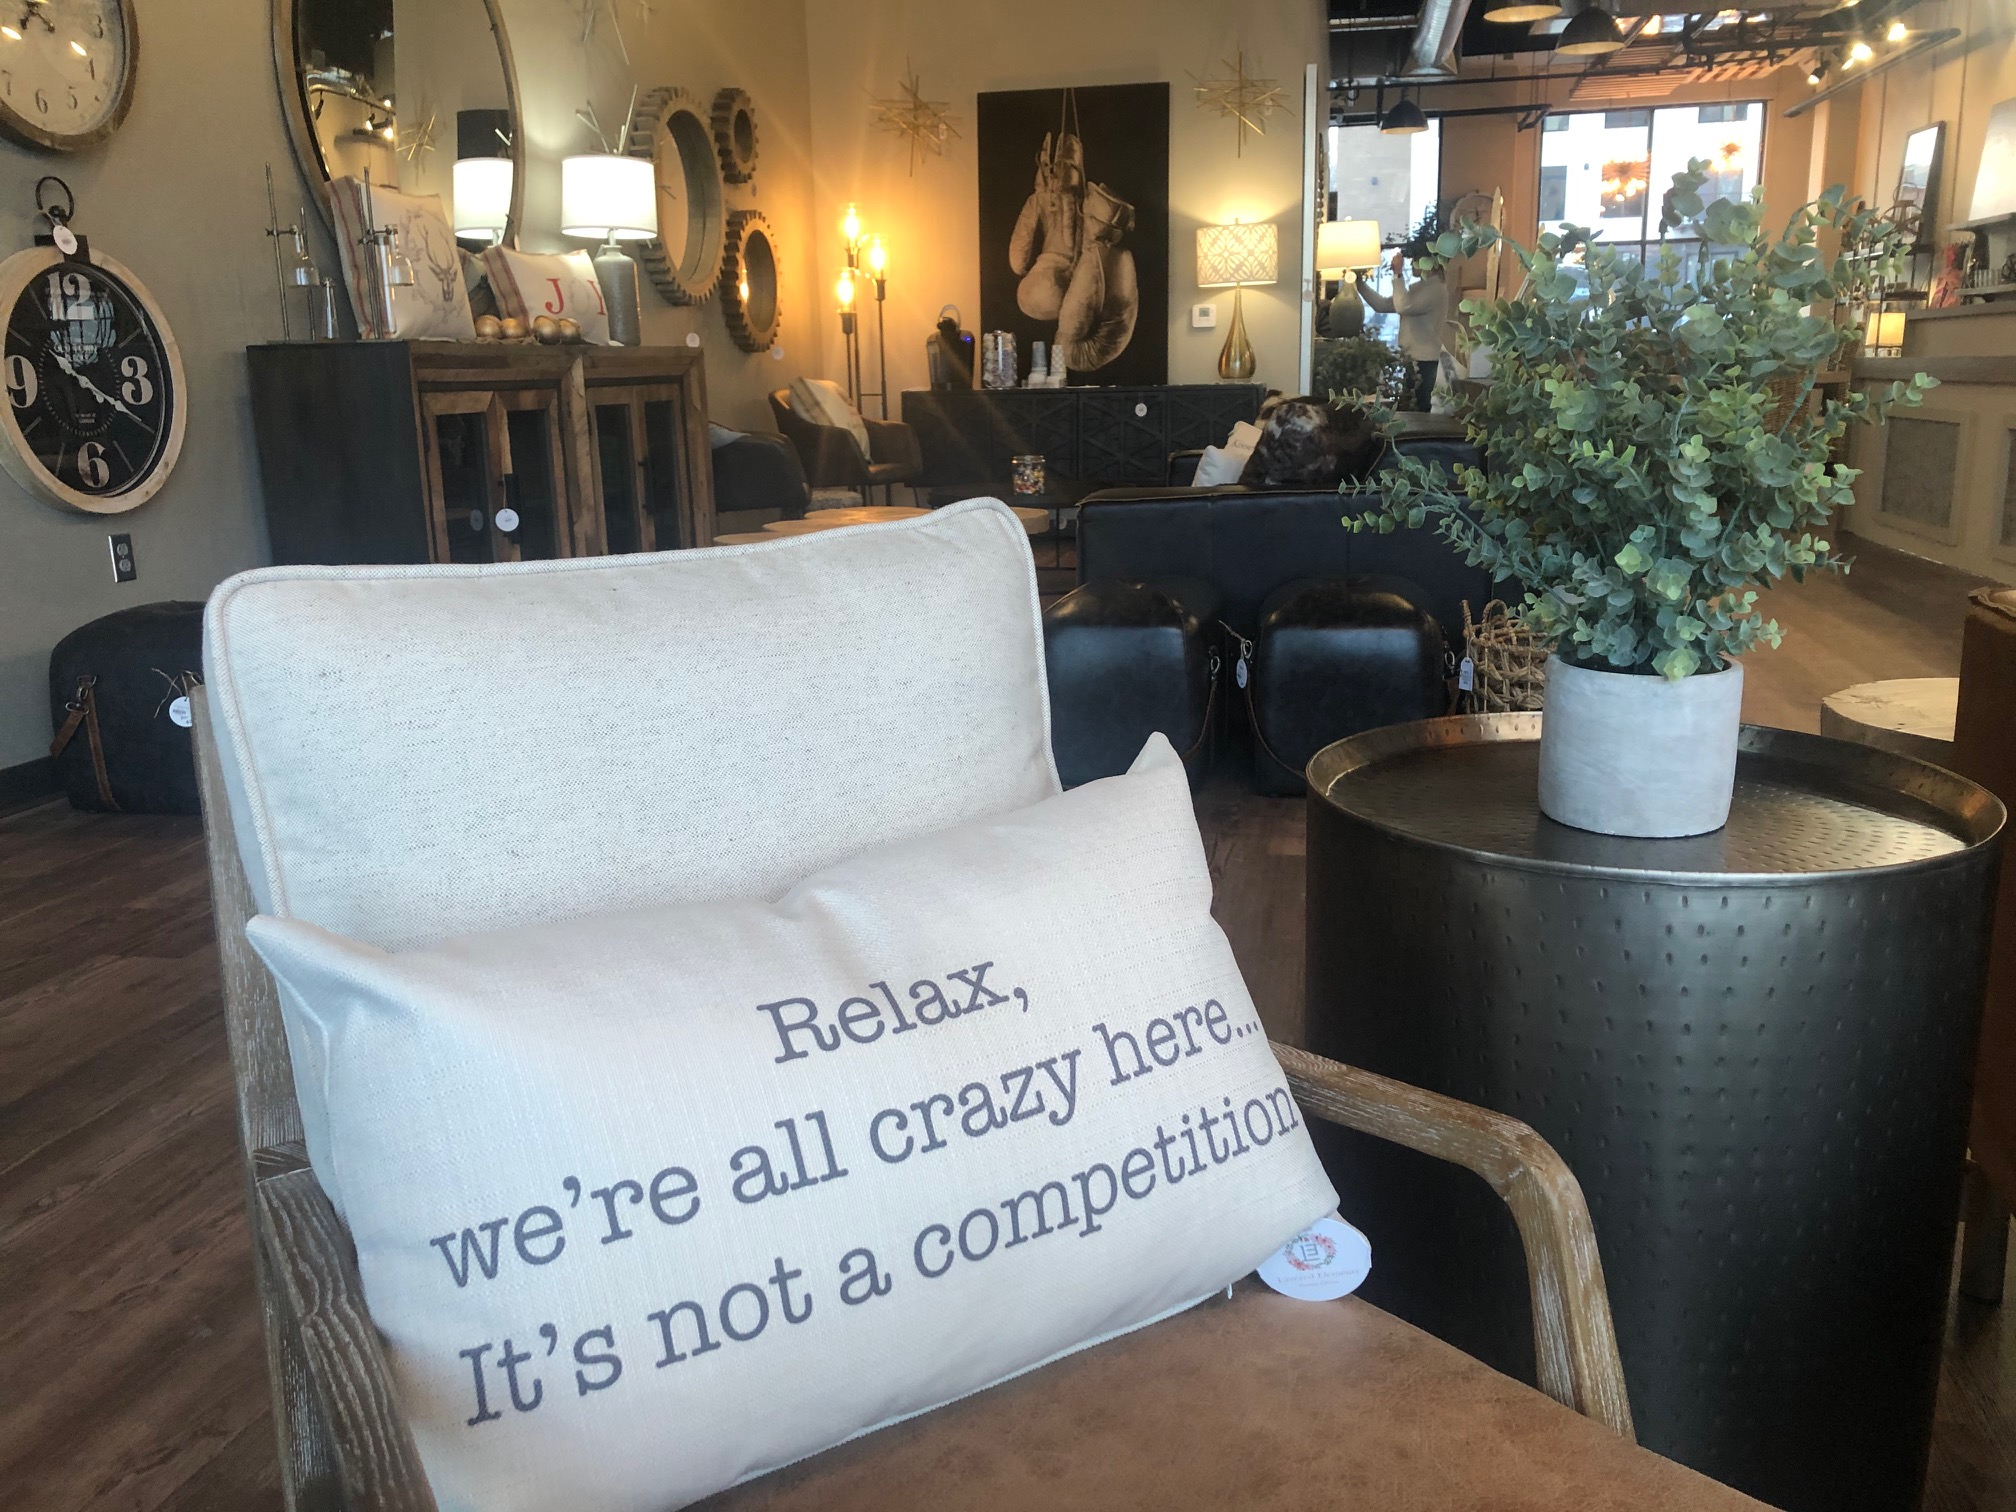 Home furnishings, decor business opens